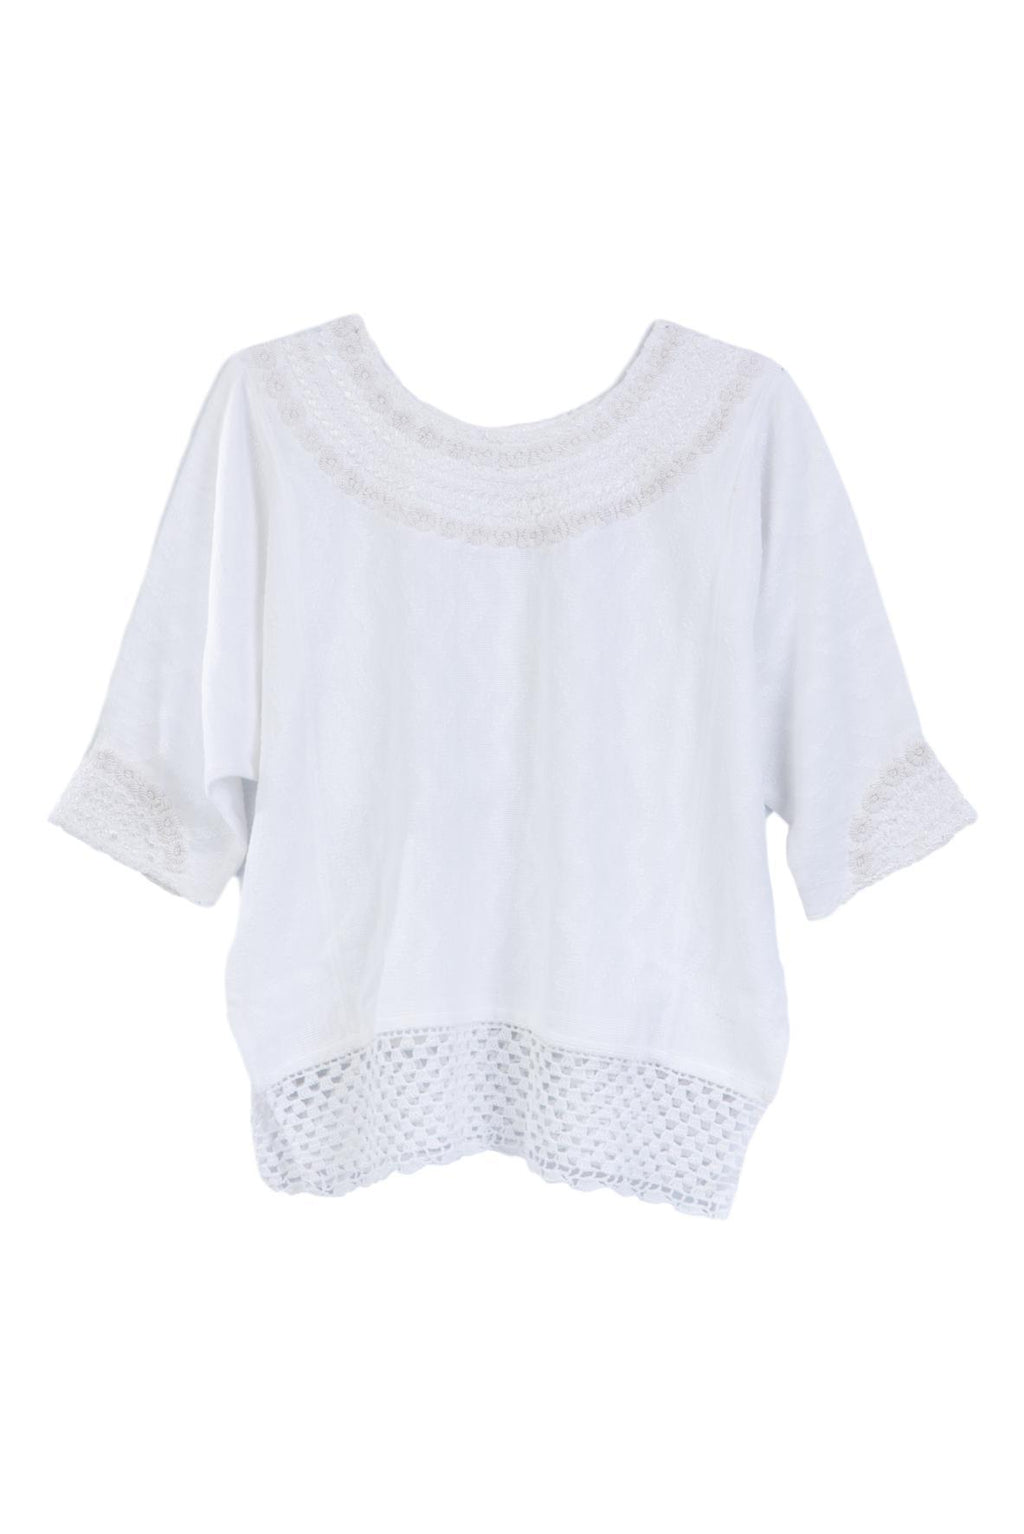 Hand-loomed and hand-embroidered white blouse